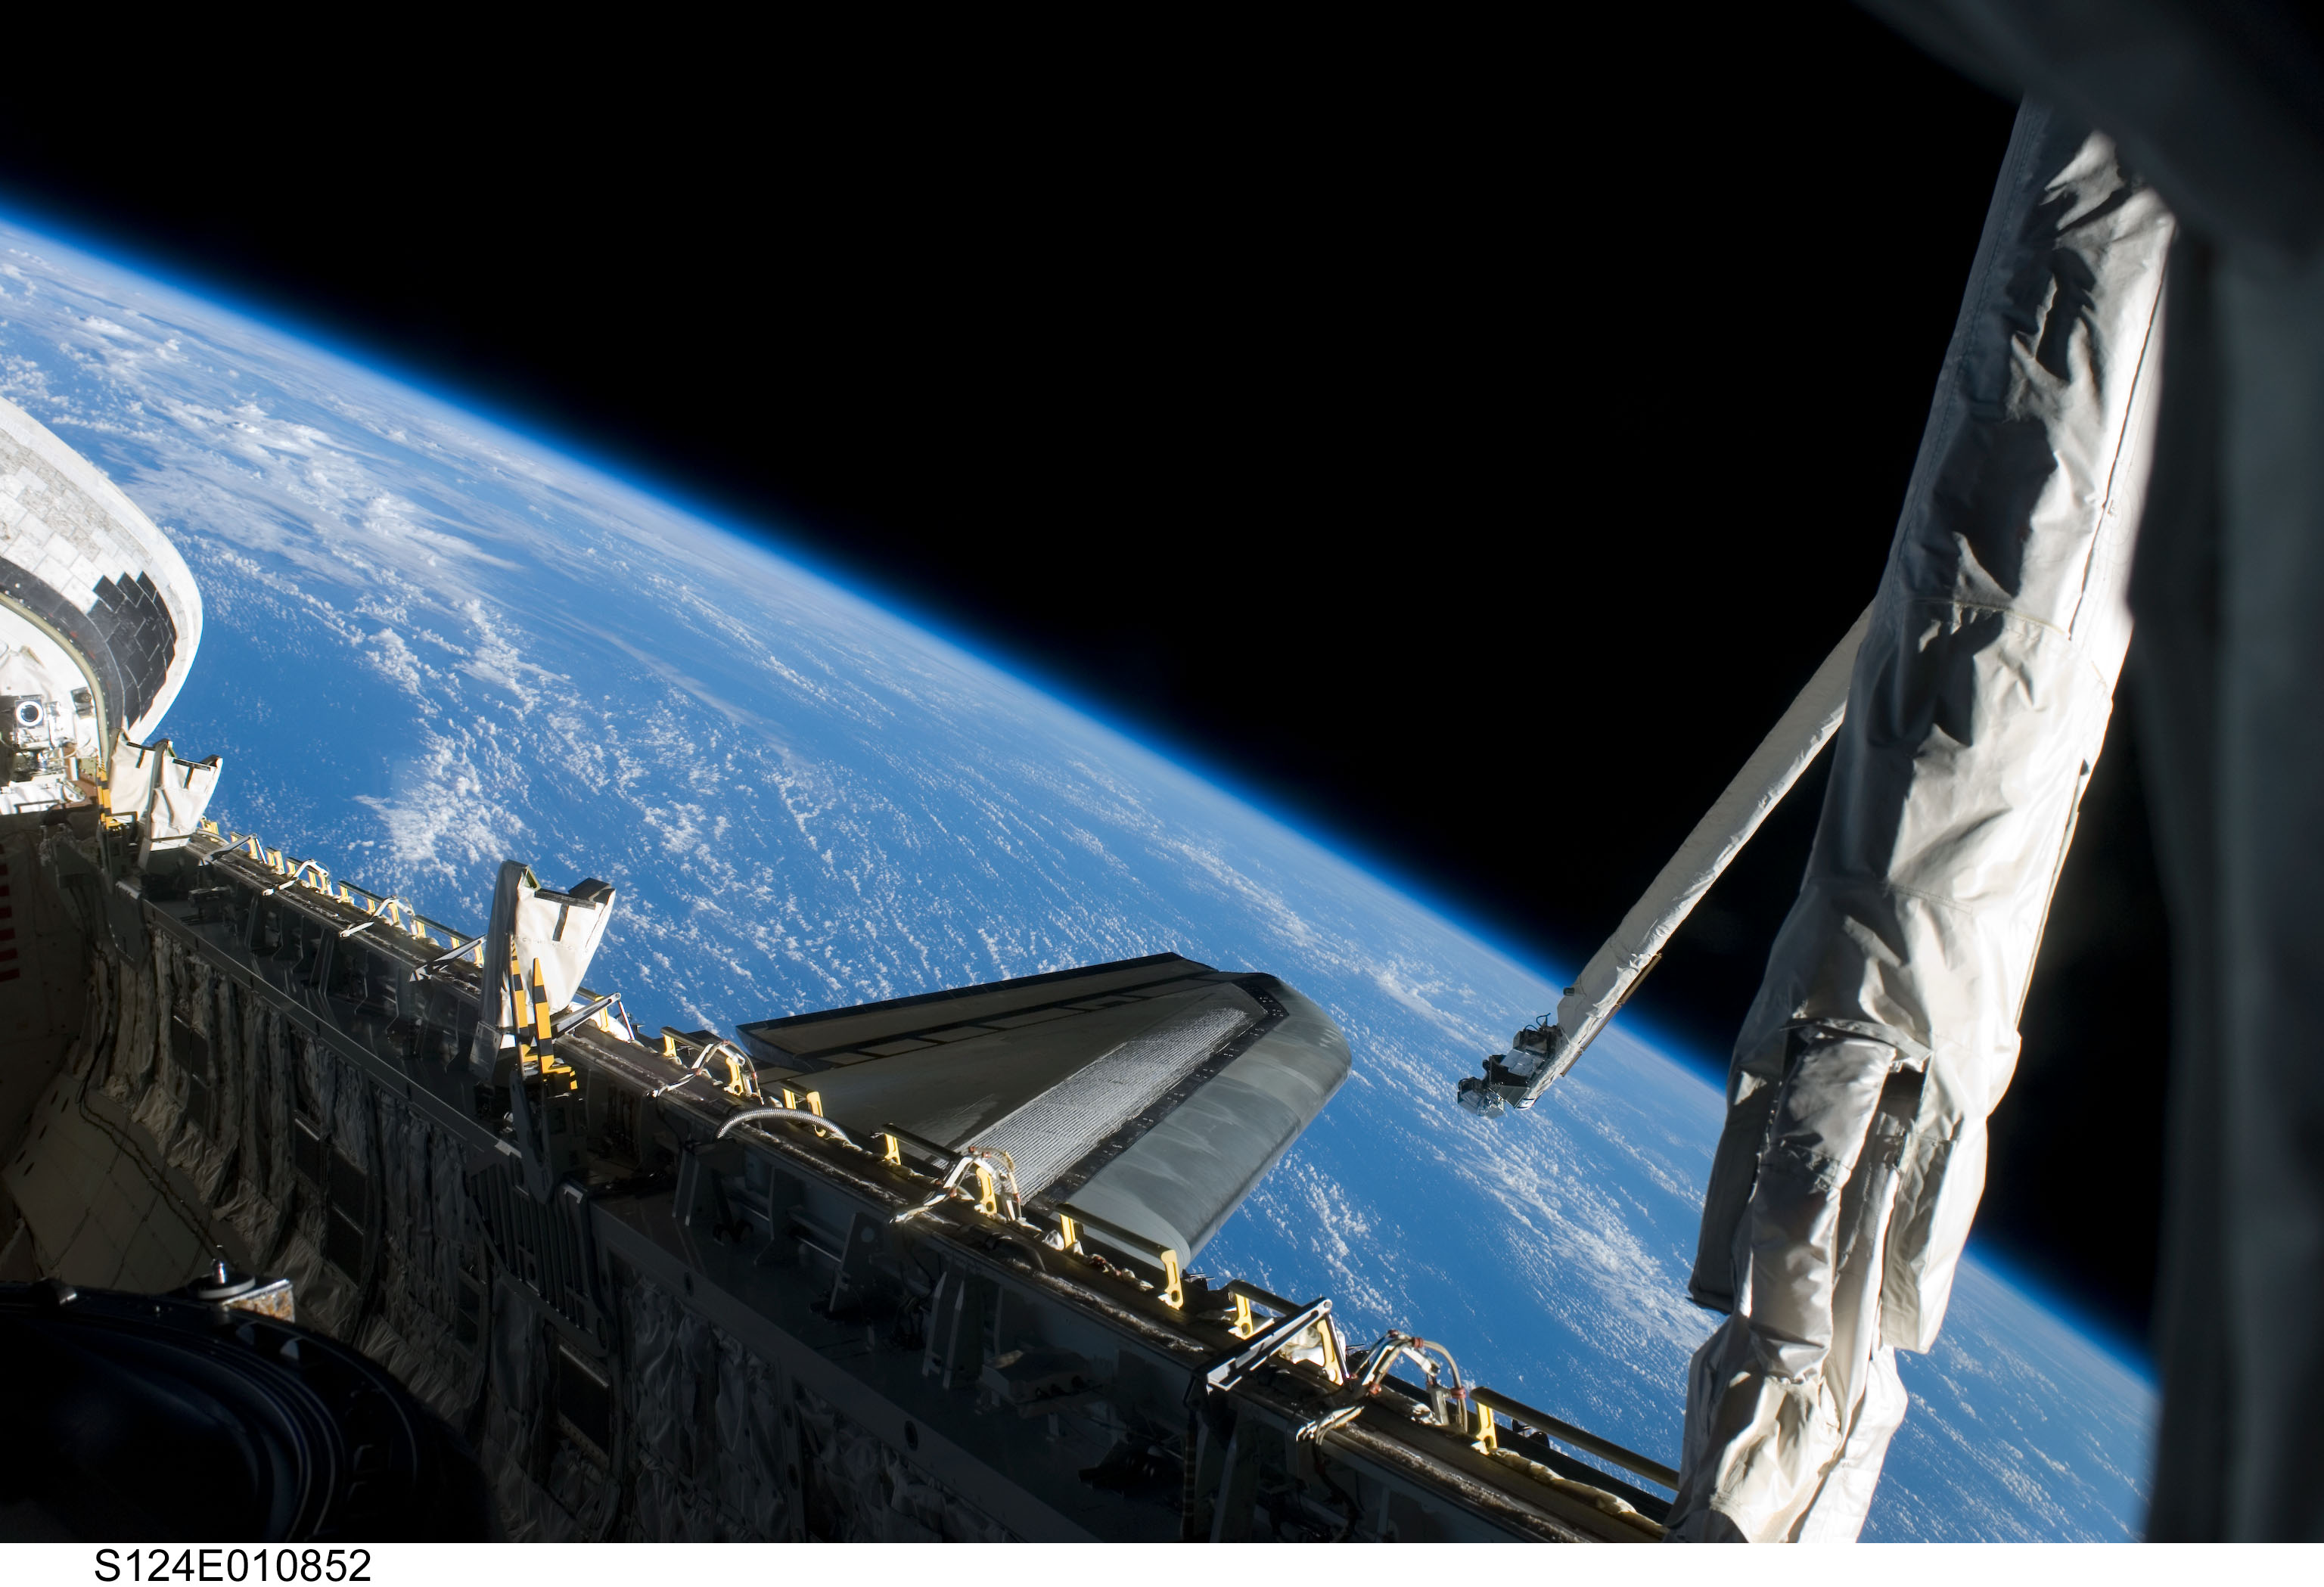 space shuttle atlantis which is orbiter - photo #33